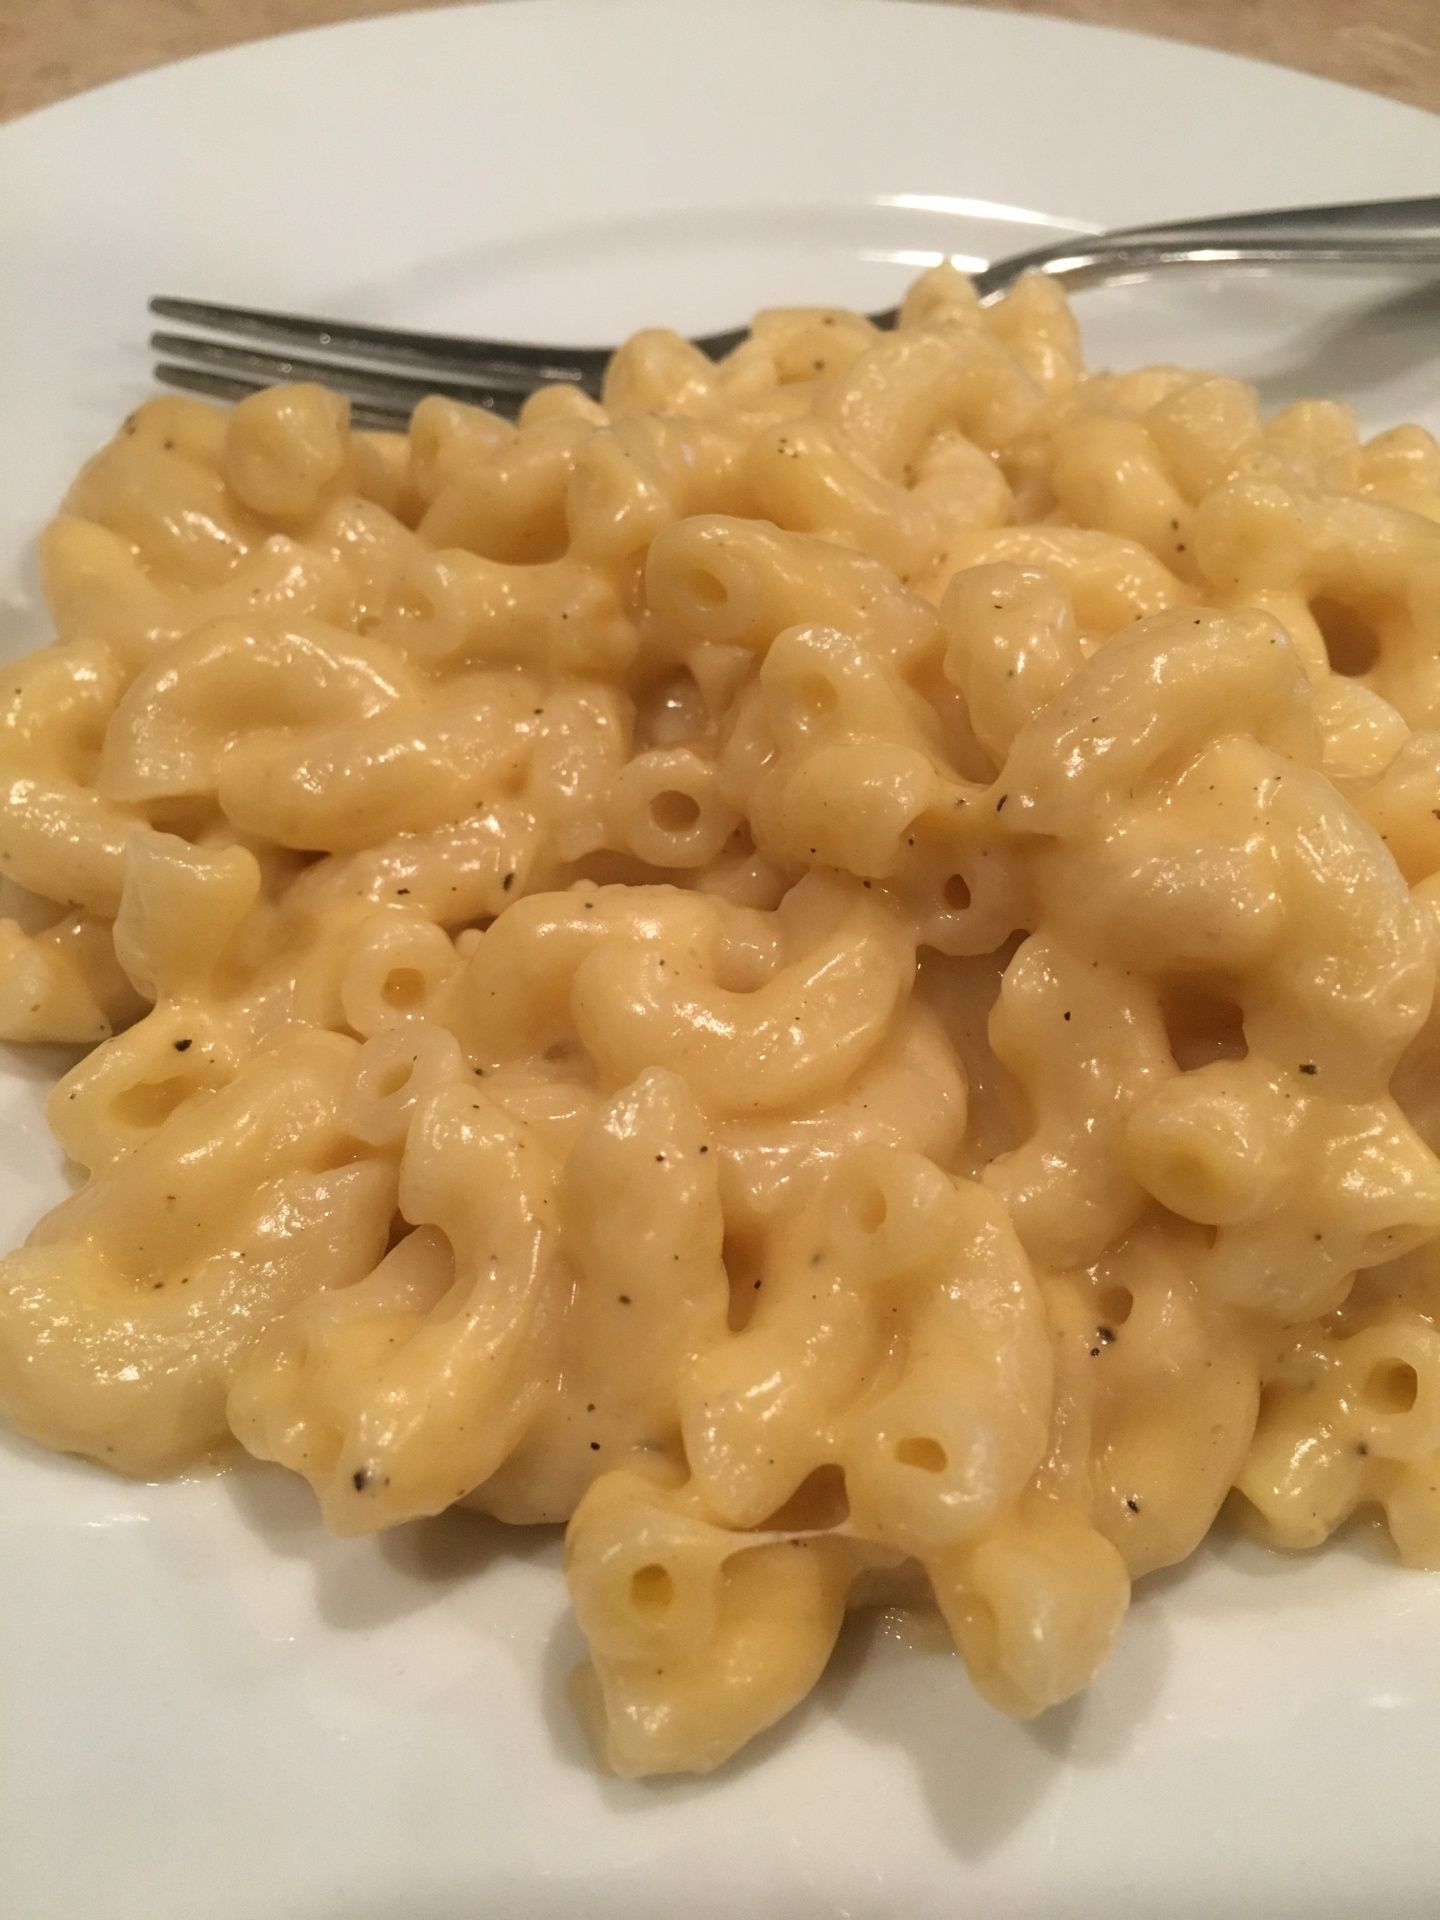 Who doesn't love mac n' cheese? No friend or family member of mine, that's for sure. Hot and cheesy, it's a classic comfort food beloved by all ages. Literally all ages, because even if you don't have teeth its soft enough to gum down. This version has three cheeses (all real, no Velveeta or American), so it's fancy, with plenty of opportunity for customization. Because the thing about cheese is that every cheese wants to go in macaroni. It's a cheese's highest calling. So I typically use...